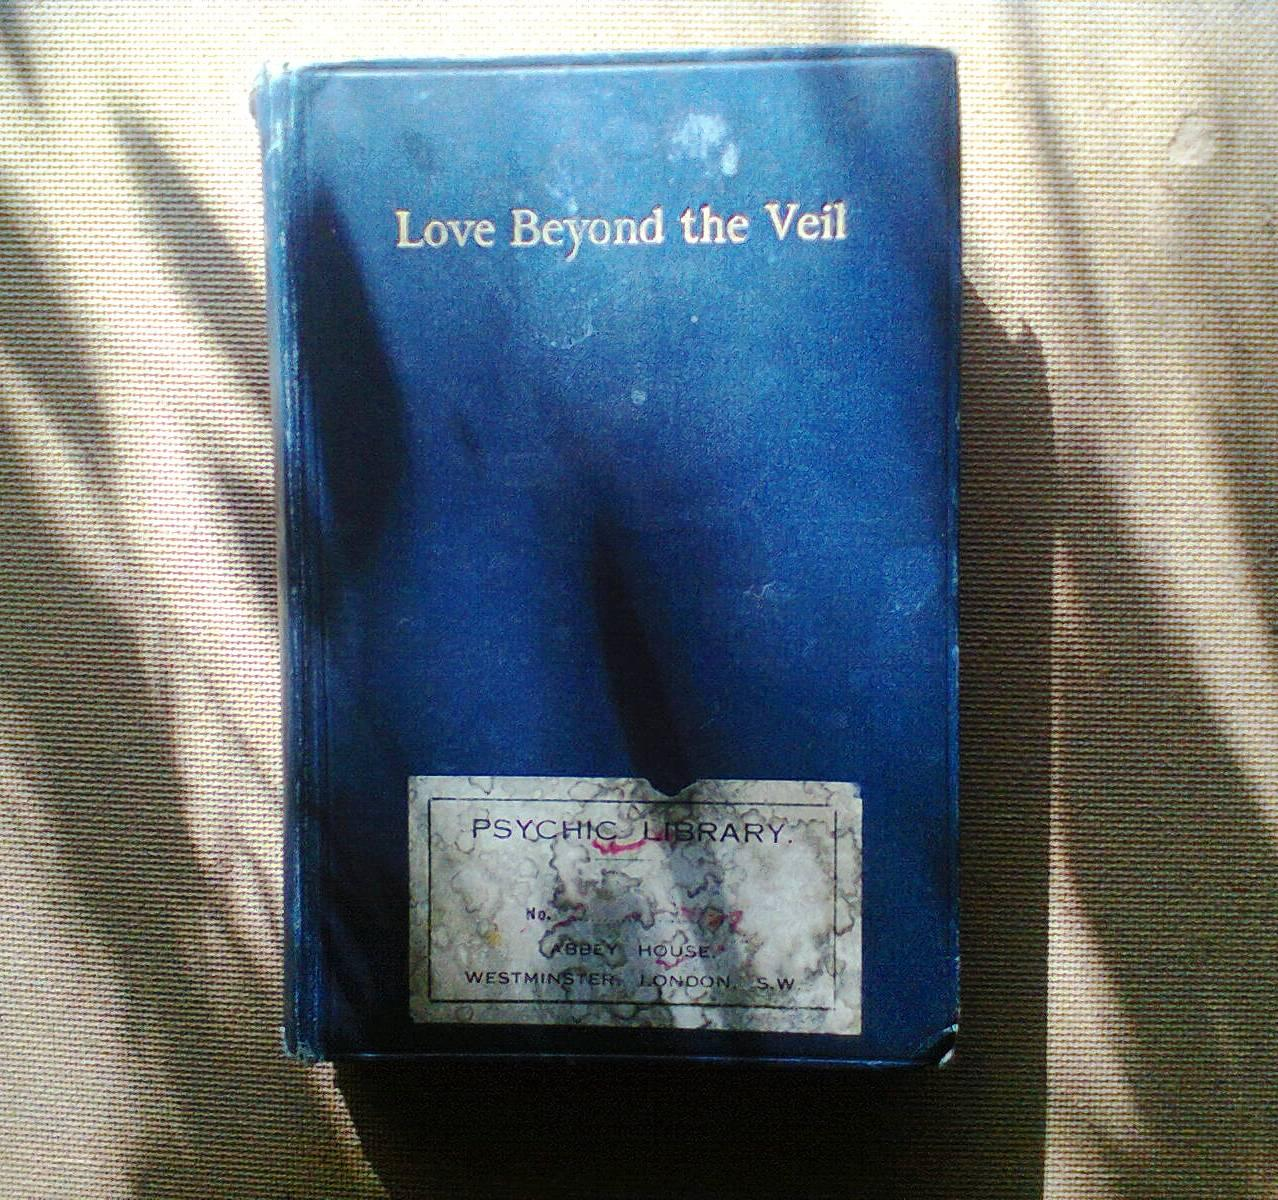 Love Beyond The Veil Anon Good Hardcover Sub-title: 'An Echo Of The Great War'. The case study of a woman making repeated psychic 'contact' with a previous lover who died in France. The mediu